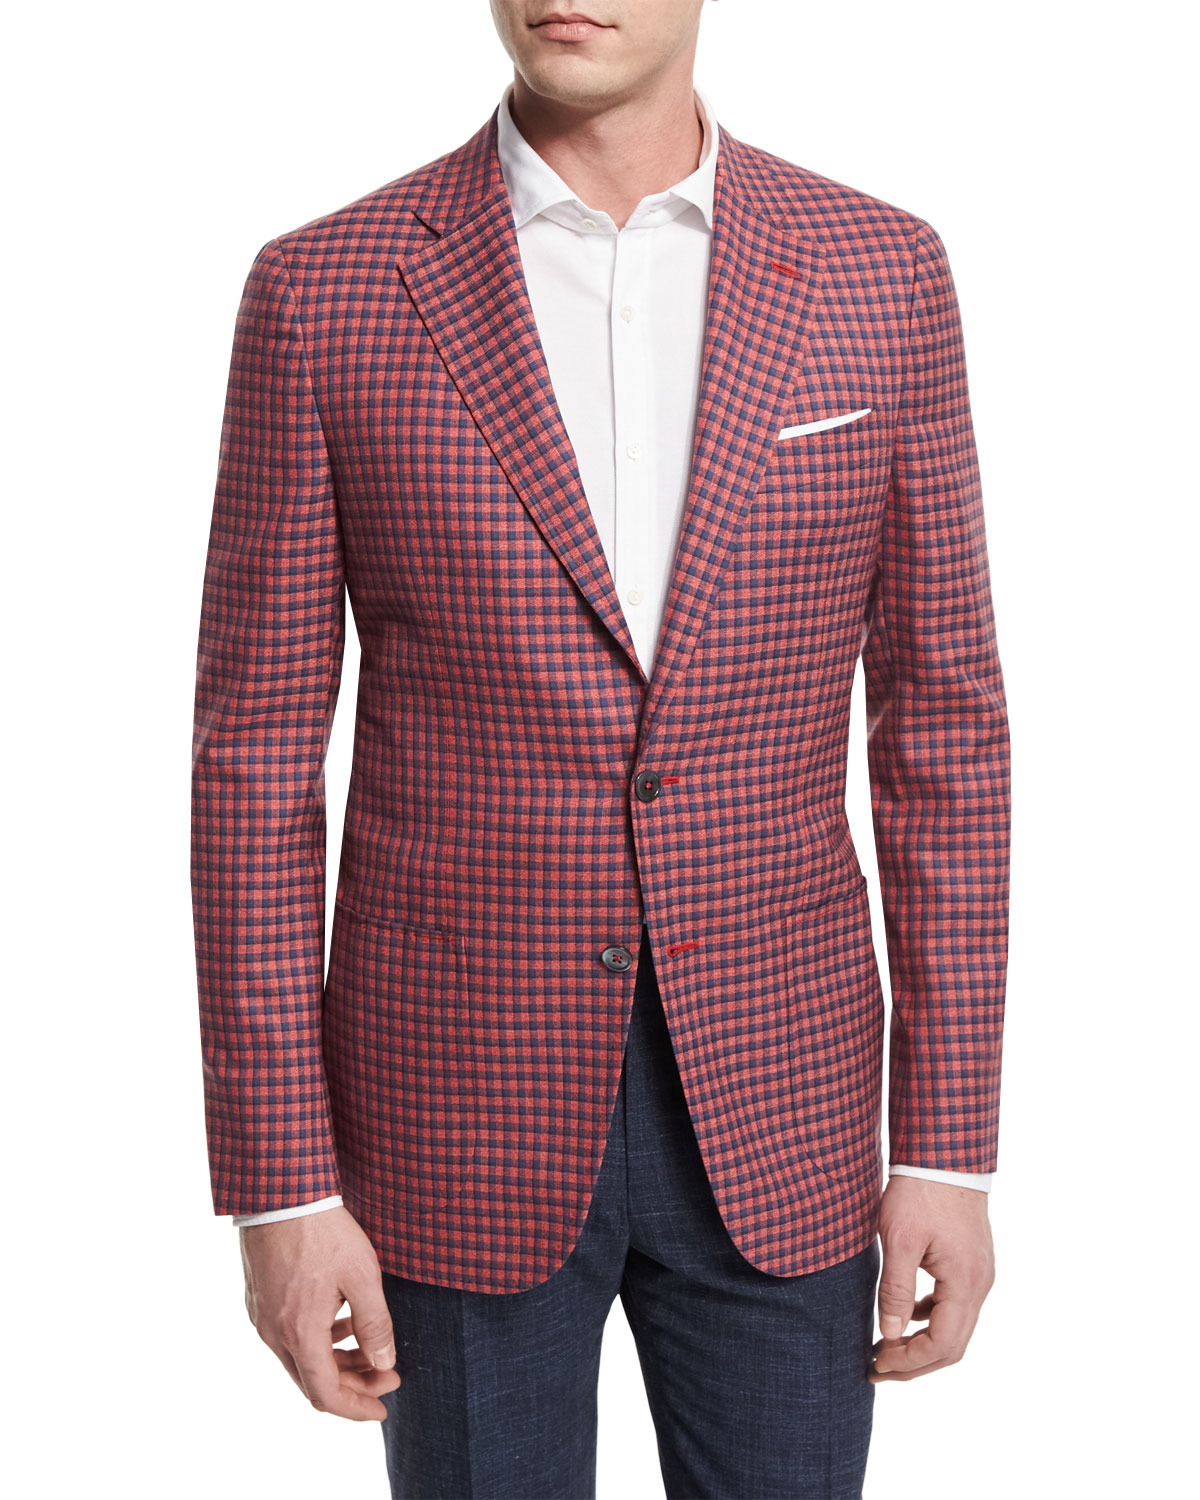 Shop classic mens fashion blazers in a wide range of cool designs such as floral, multicolor, and even plaid. Worldwide shipping available now at Perfectmensblazers.